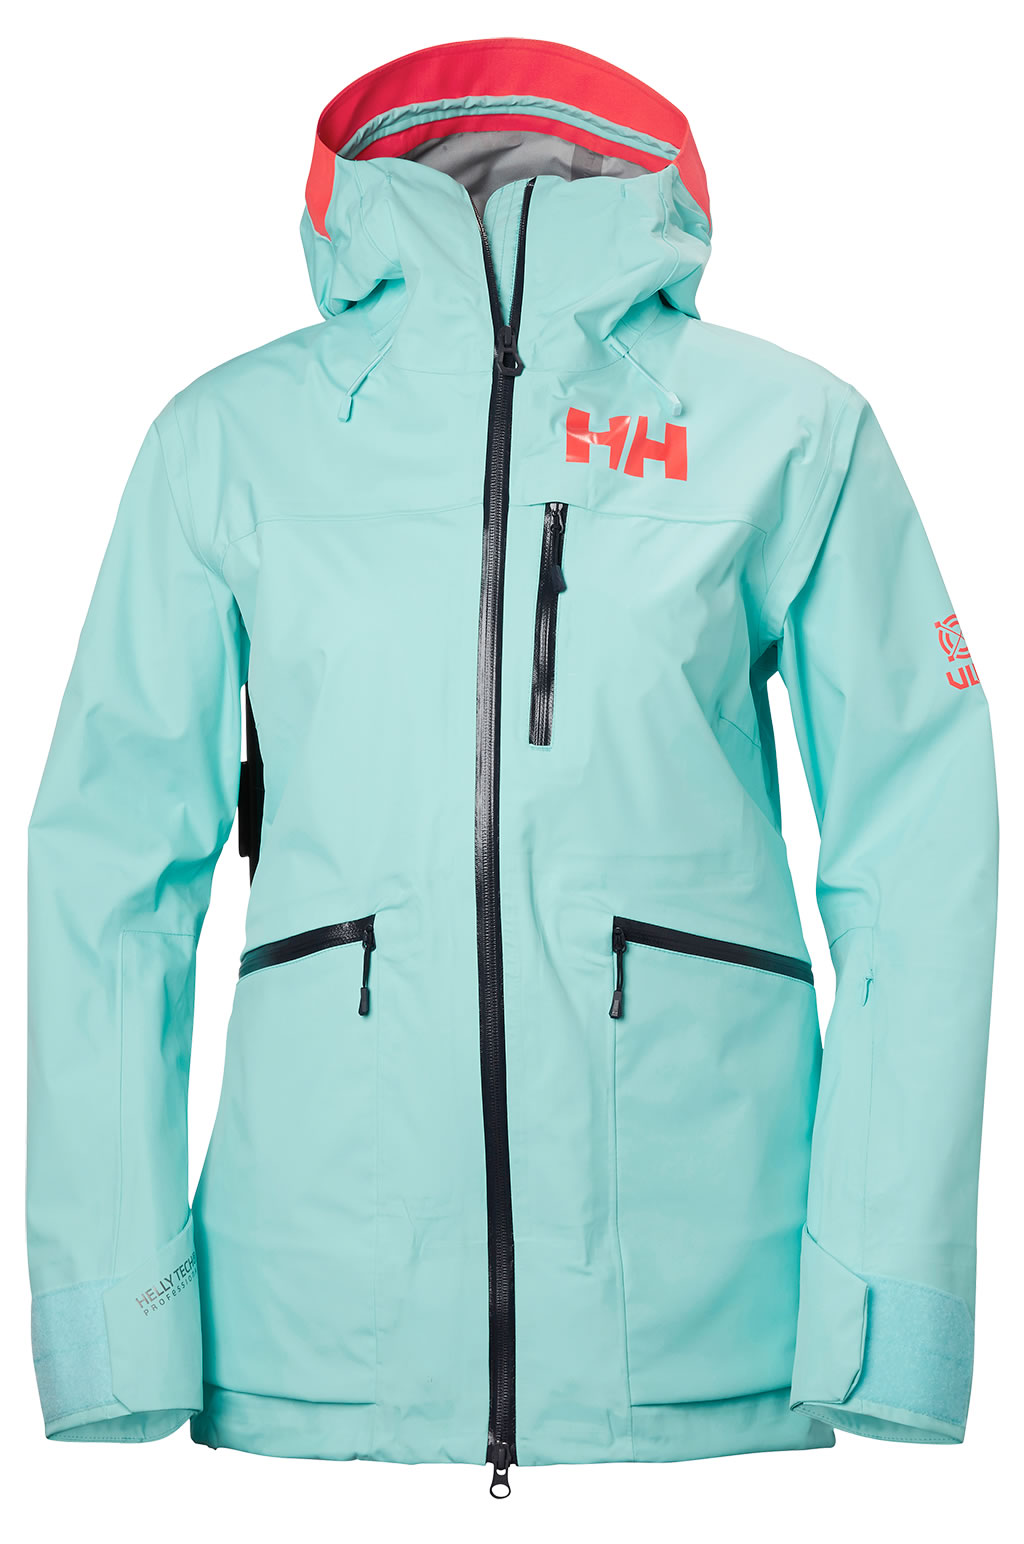 Helly Hansen ski jacket for women